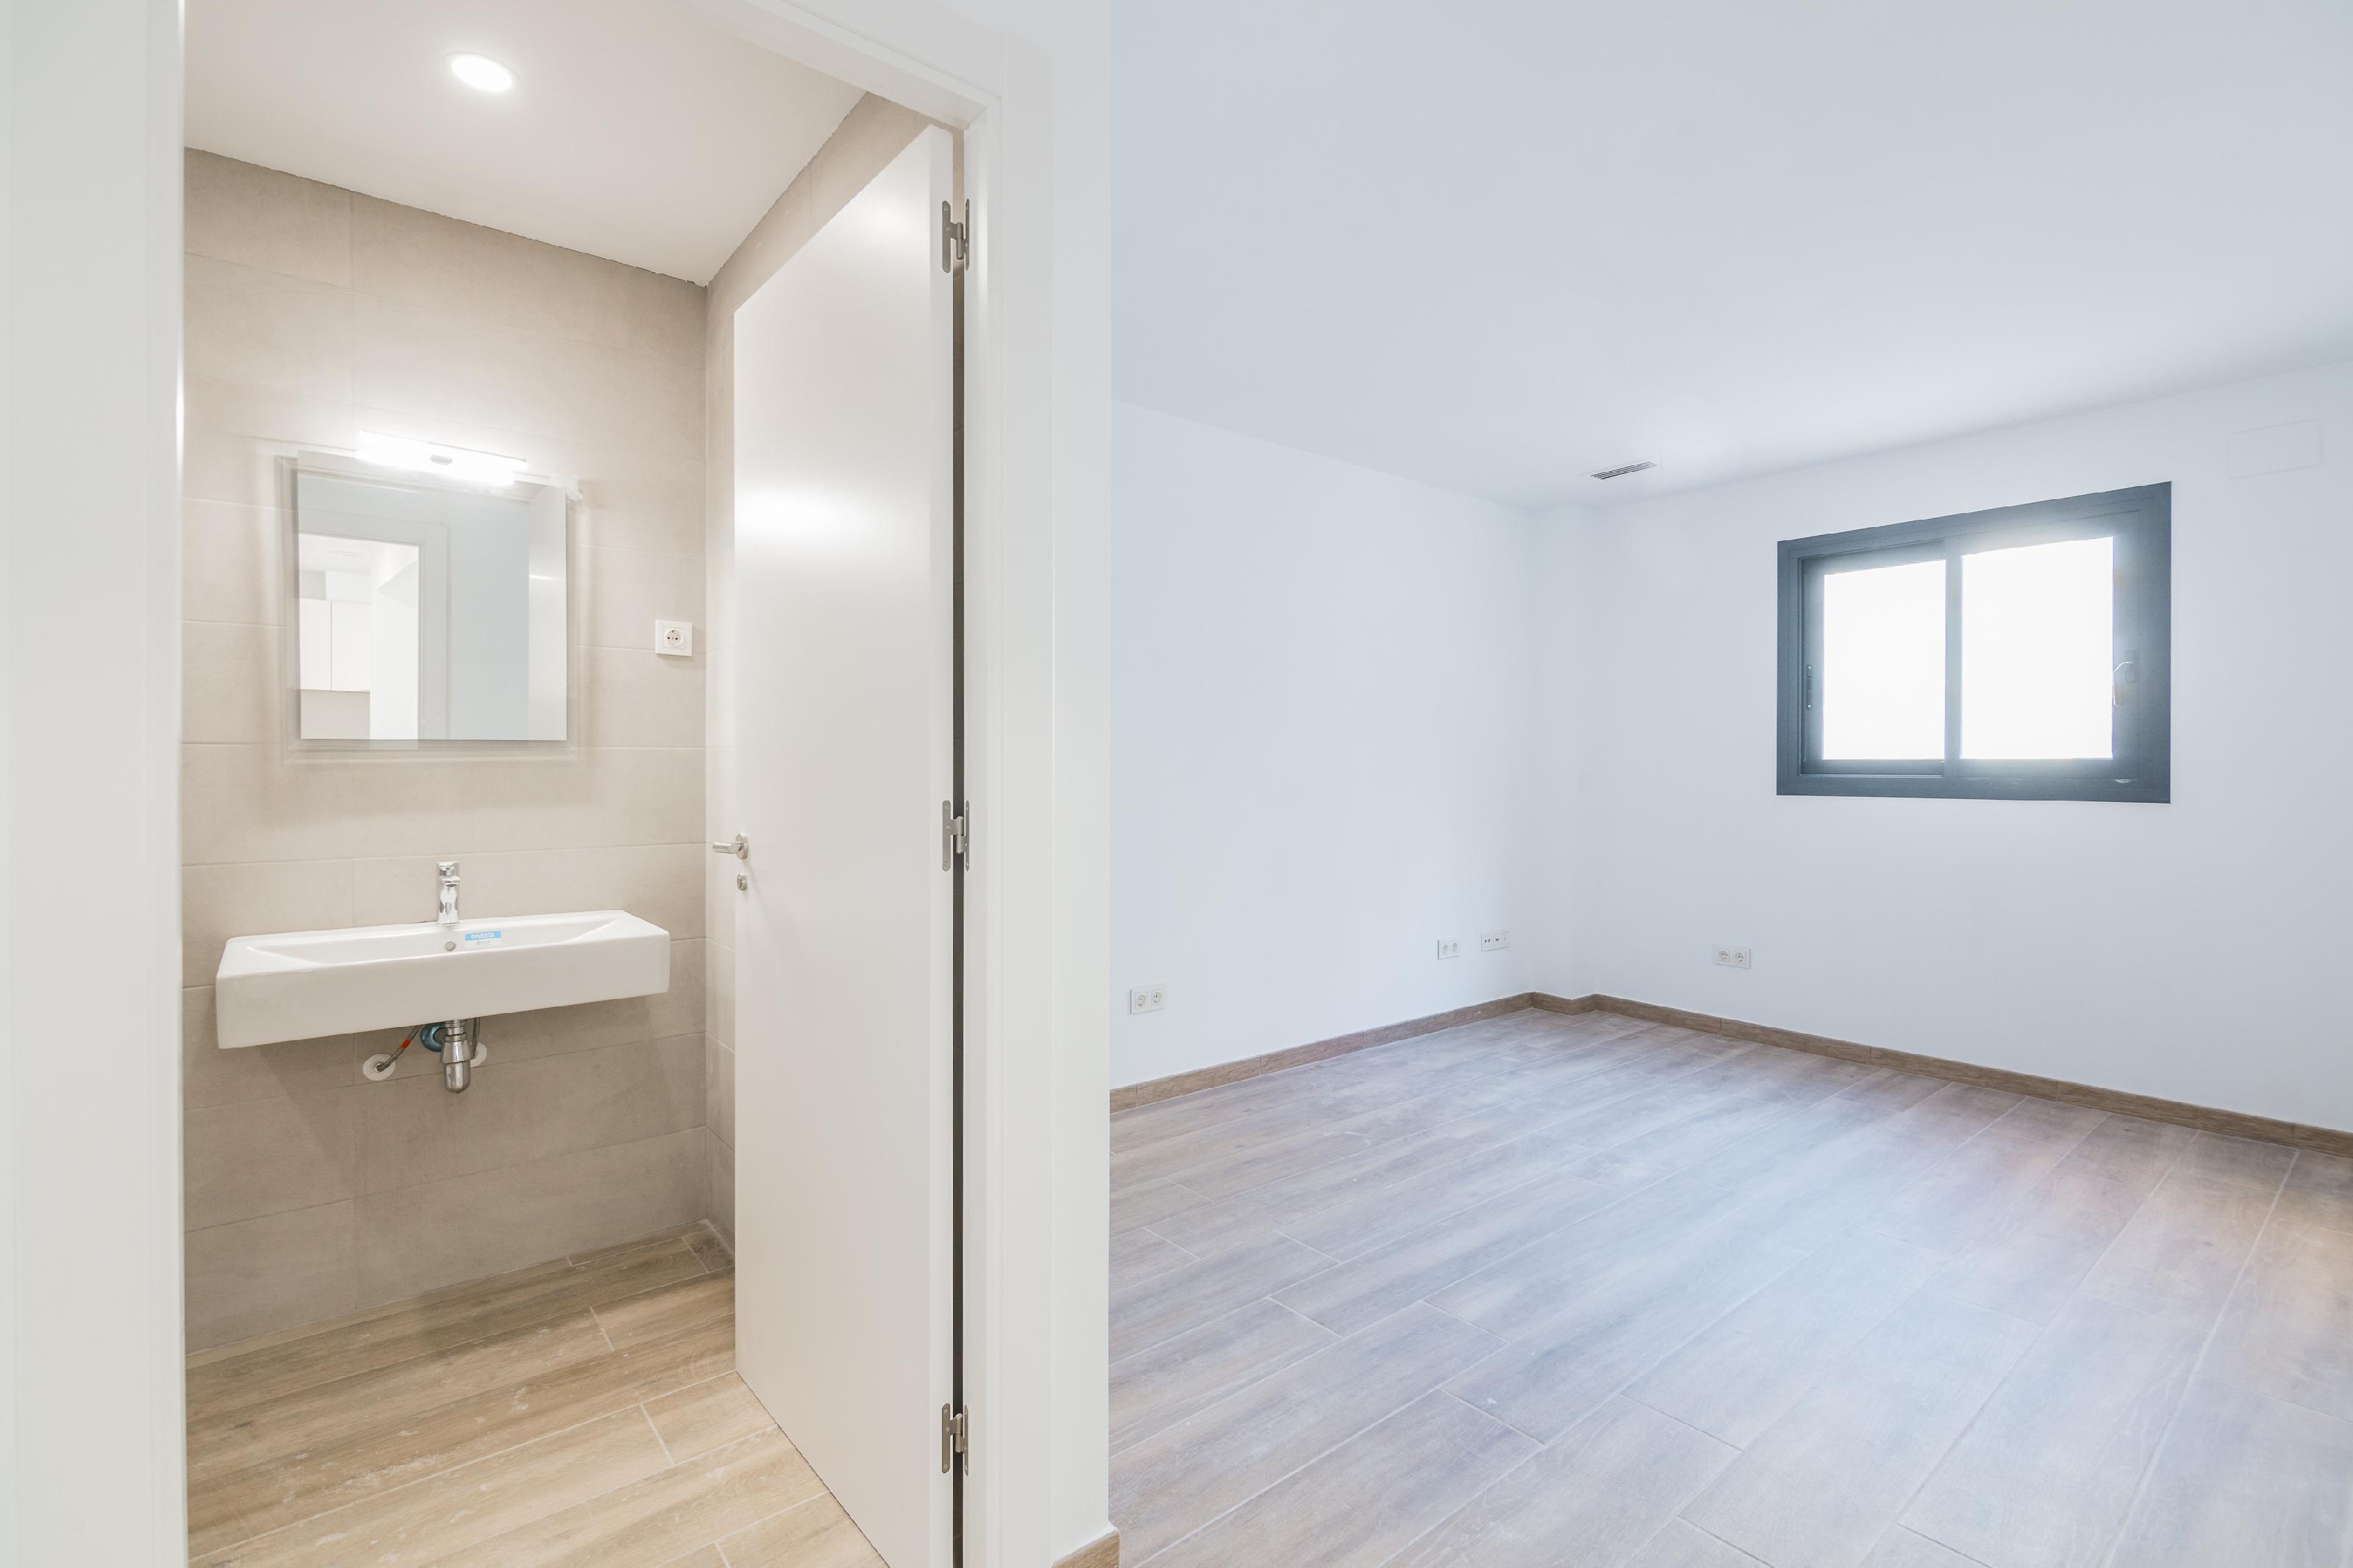 220653 Penthouse for sale in Sarrià-Sant Gervasi, Sant Gervasi-Galvany 19